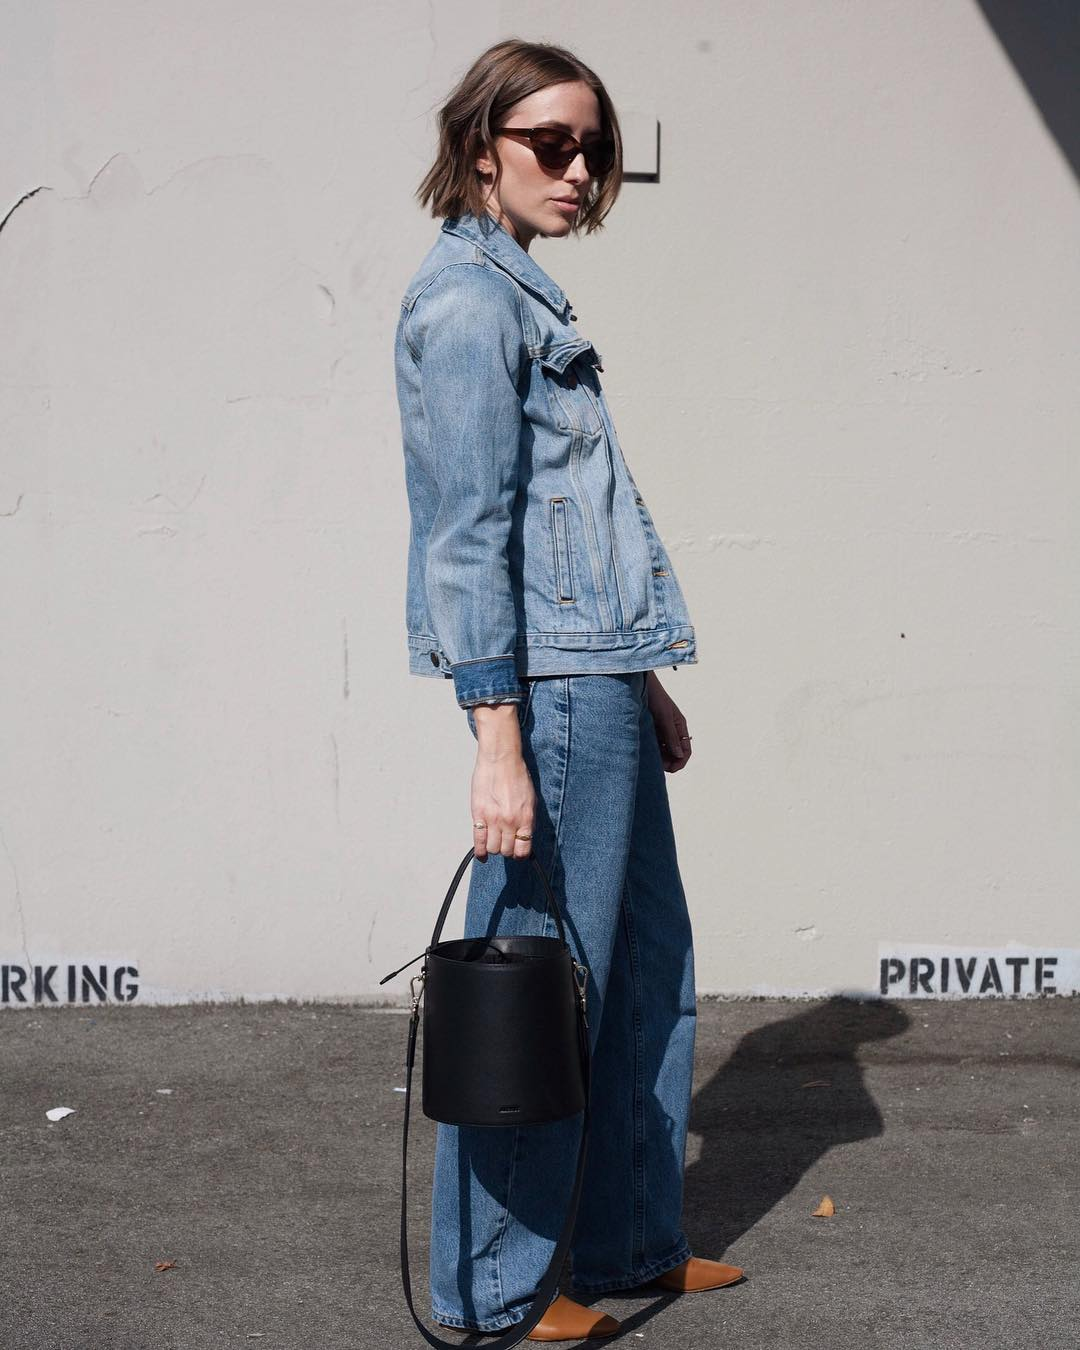 Kirstyn in a mix of modern + vintage denim